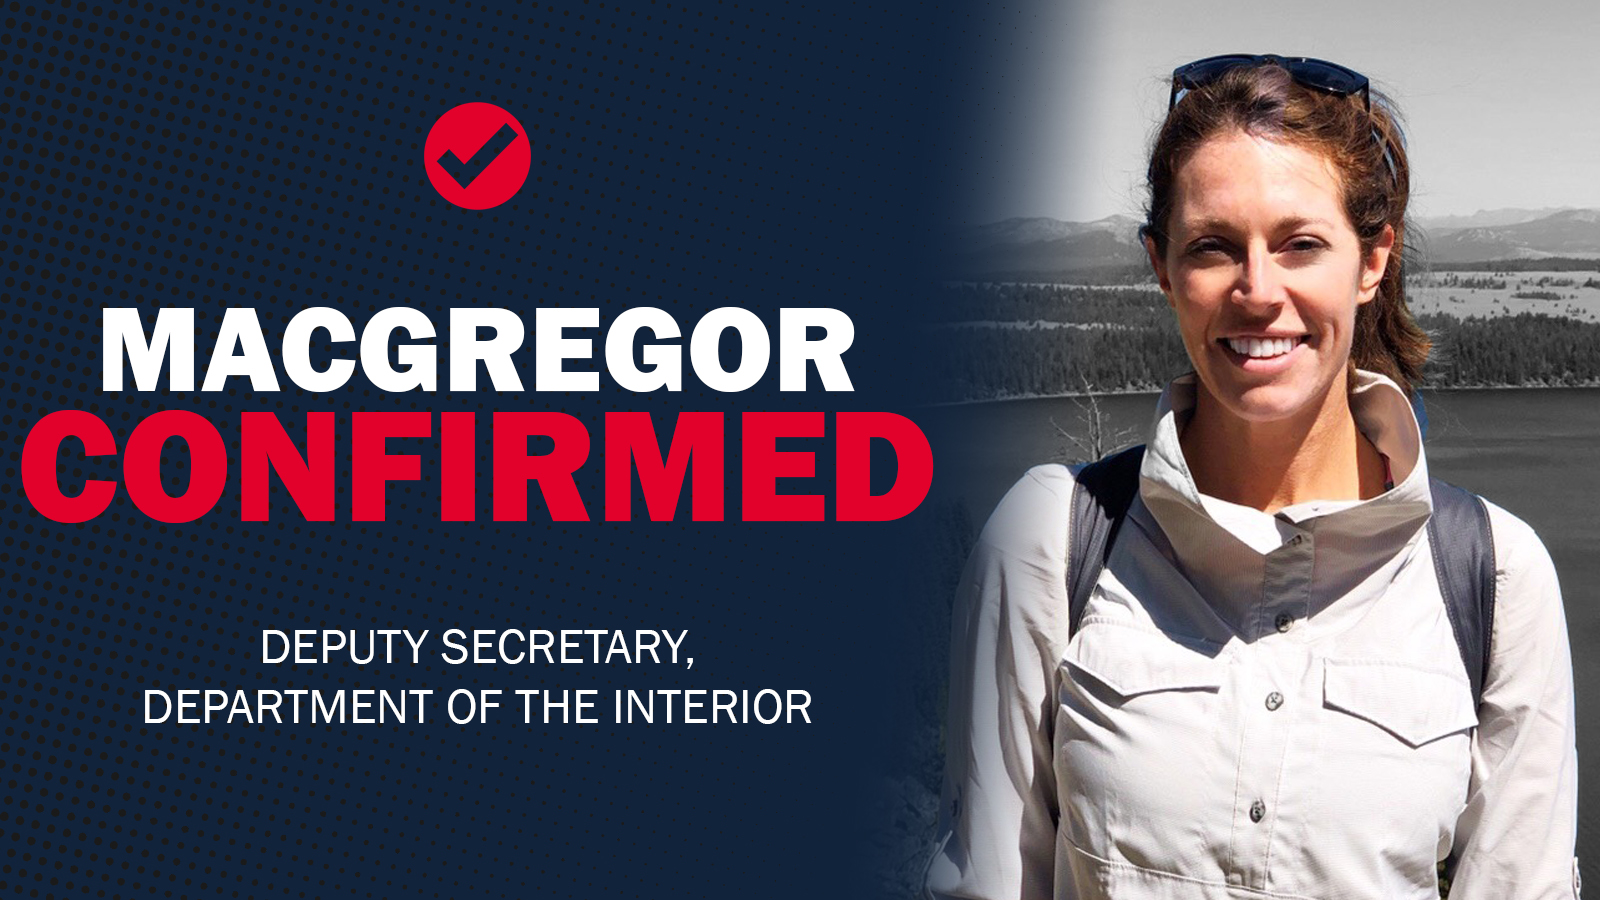 CONFIRMED: Katharine MacGregor, to be Deputy Secretary of the Interior